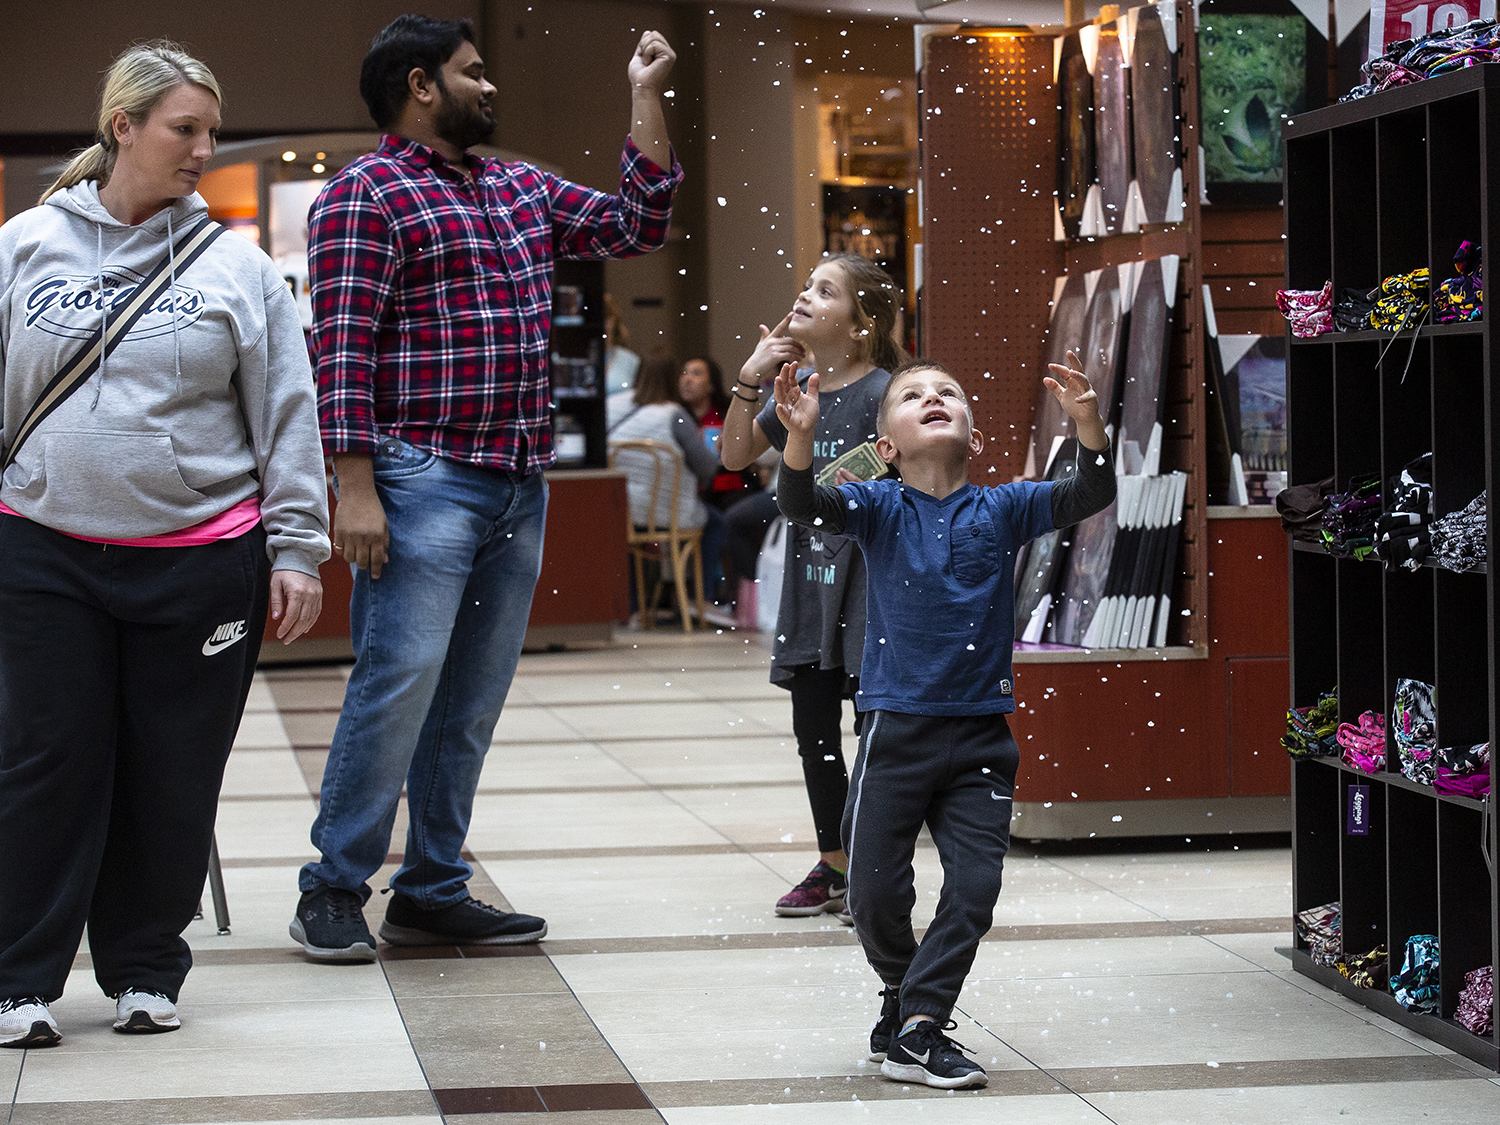 Brady Powers watches artificial snow fall from the ceiling in the center court of White Oaks Mall in Springfield, Ill. Friday, Nov. 23, 2018. Powers and his mother, Shauna, left, and his cousin Audrey Smith behind him, along with their extended family, were at the mall as part of their Black Friday shopping tradition. [Rich Saal/The State Journal-Register]